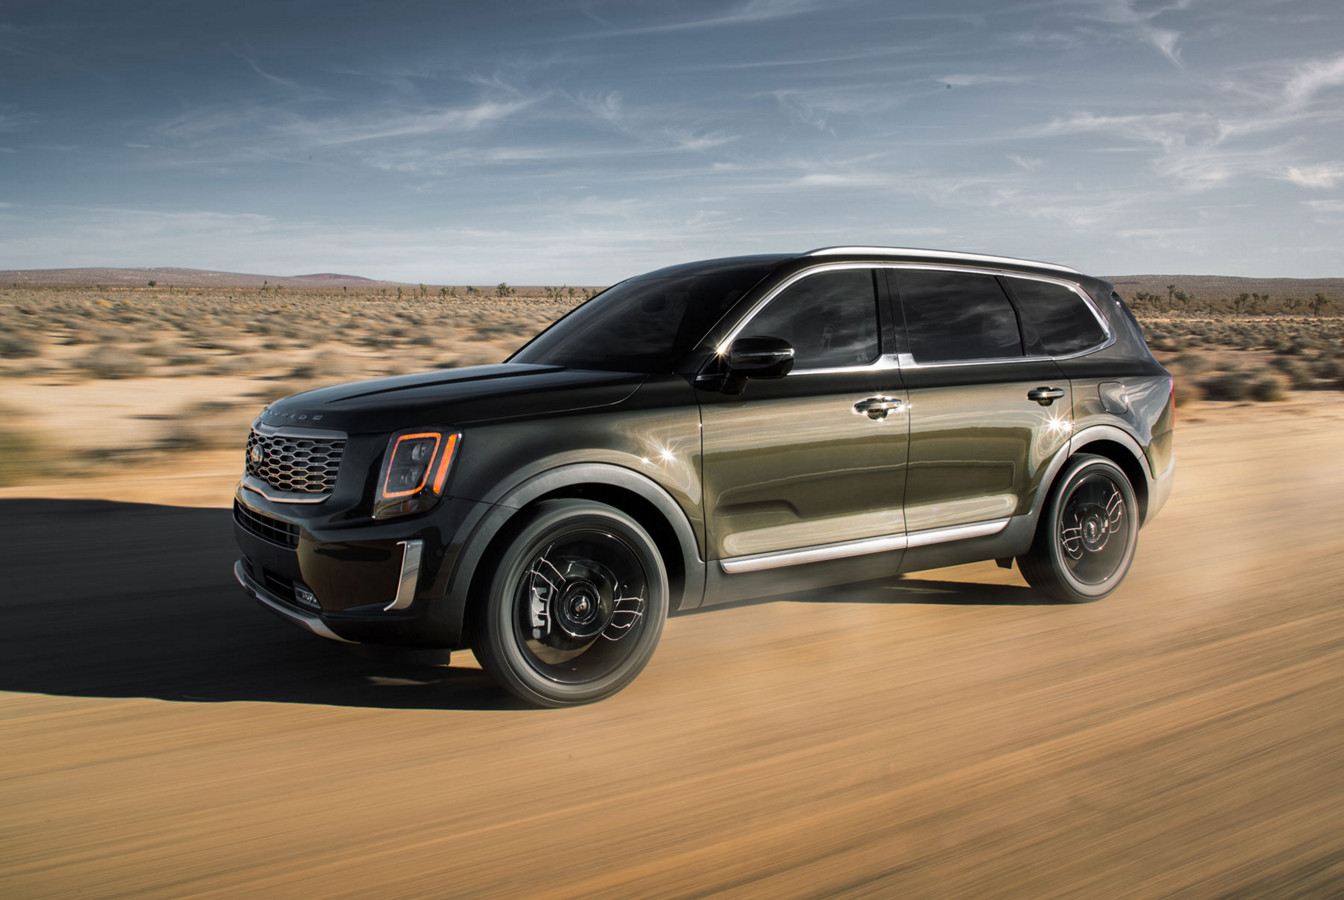 2020 Kia Telluride Leasing near Winter Haven, FL